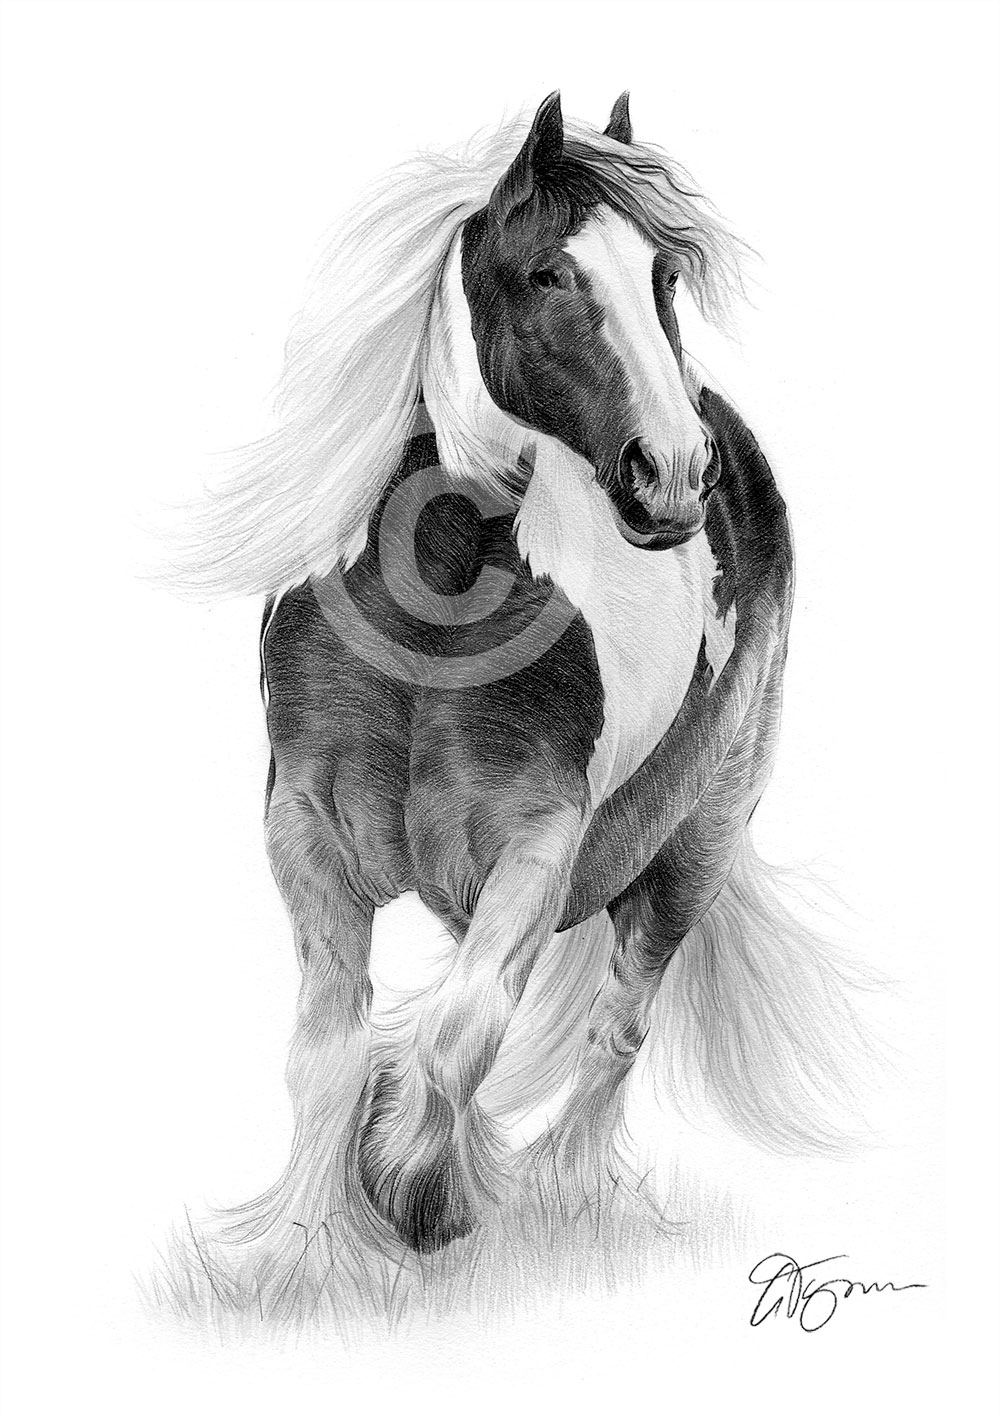 Pencil Drawing Print A3 Horse animal artwork A4 sizes signed by artist